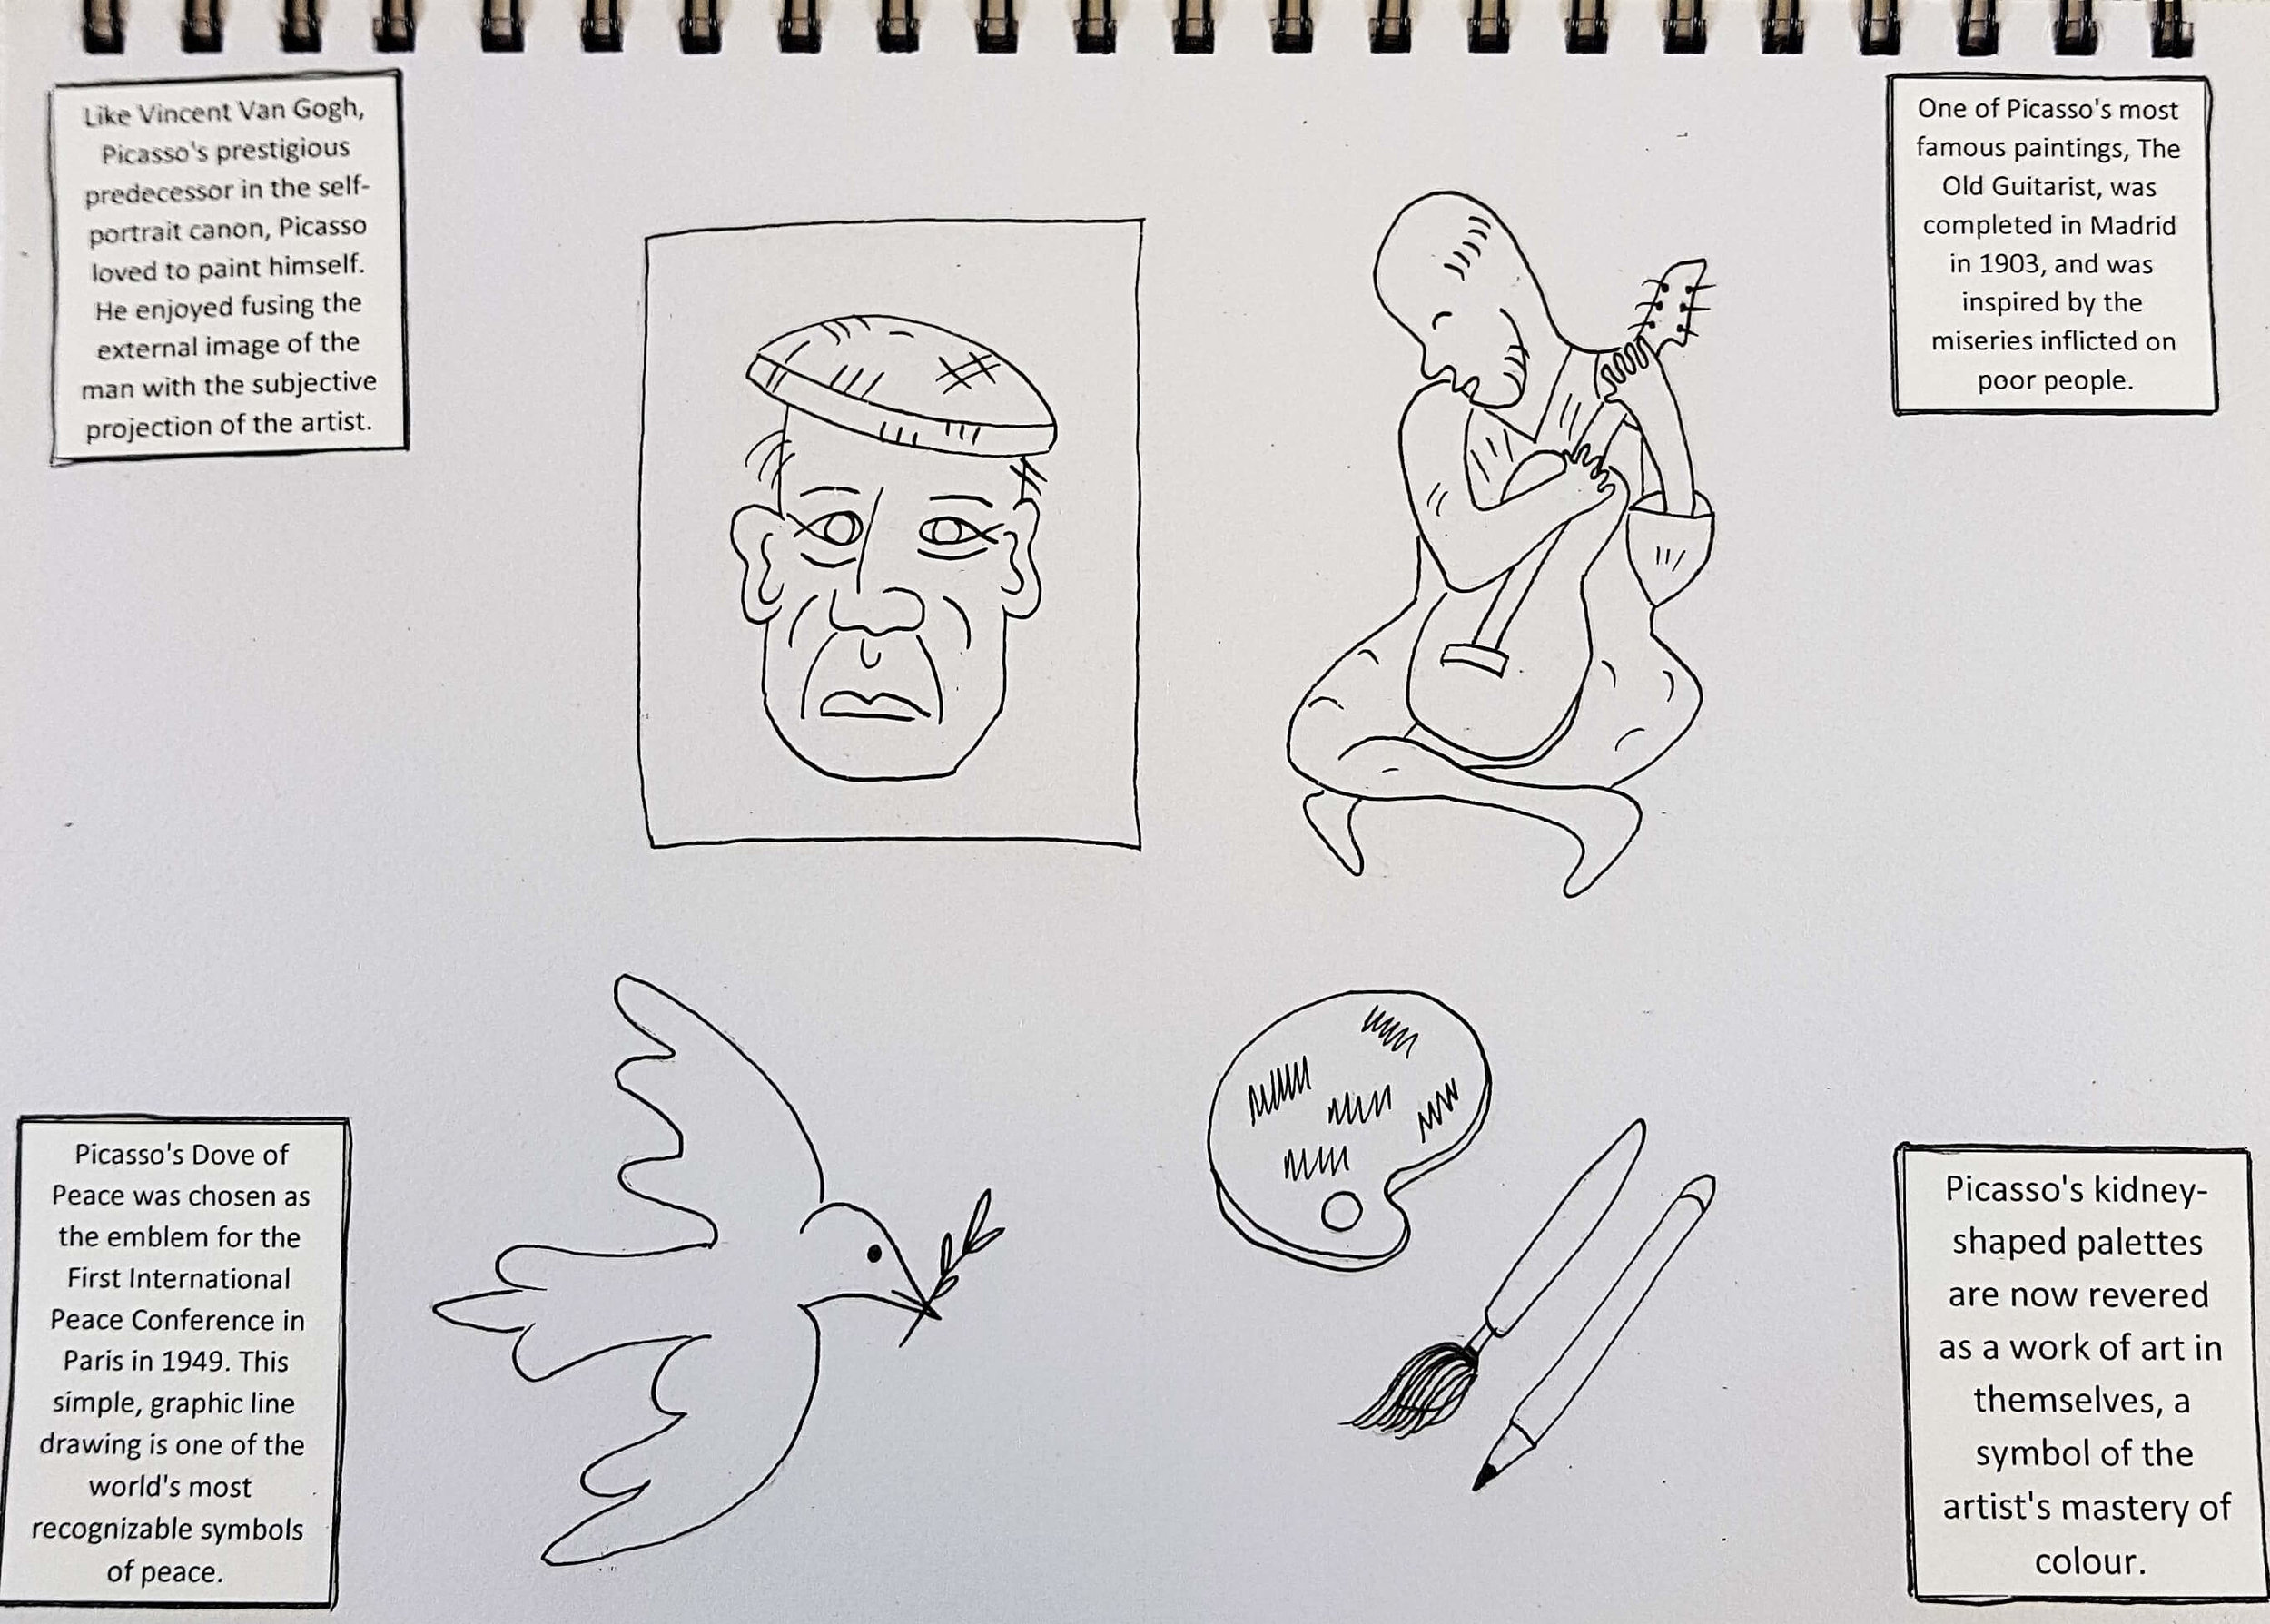 Day 20: Pablo Picasso (part 2)